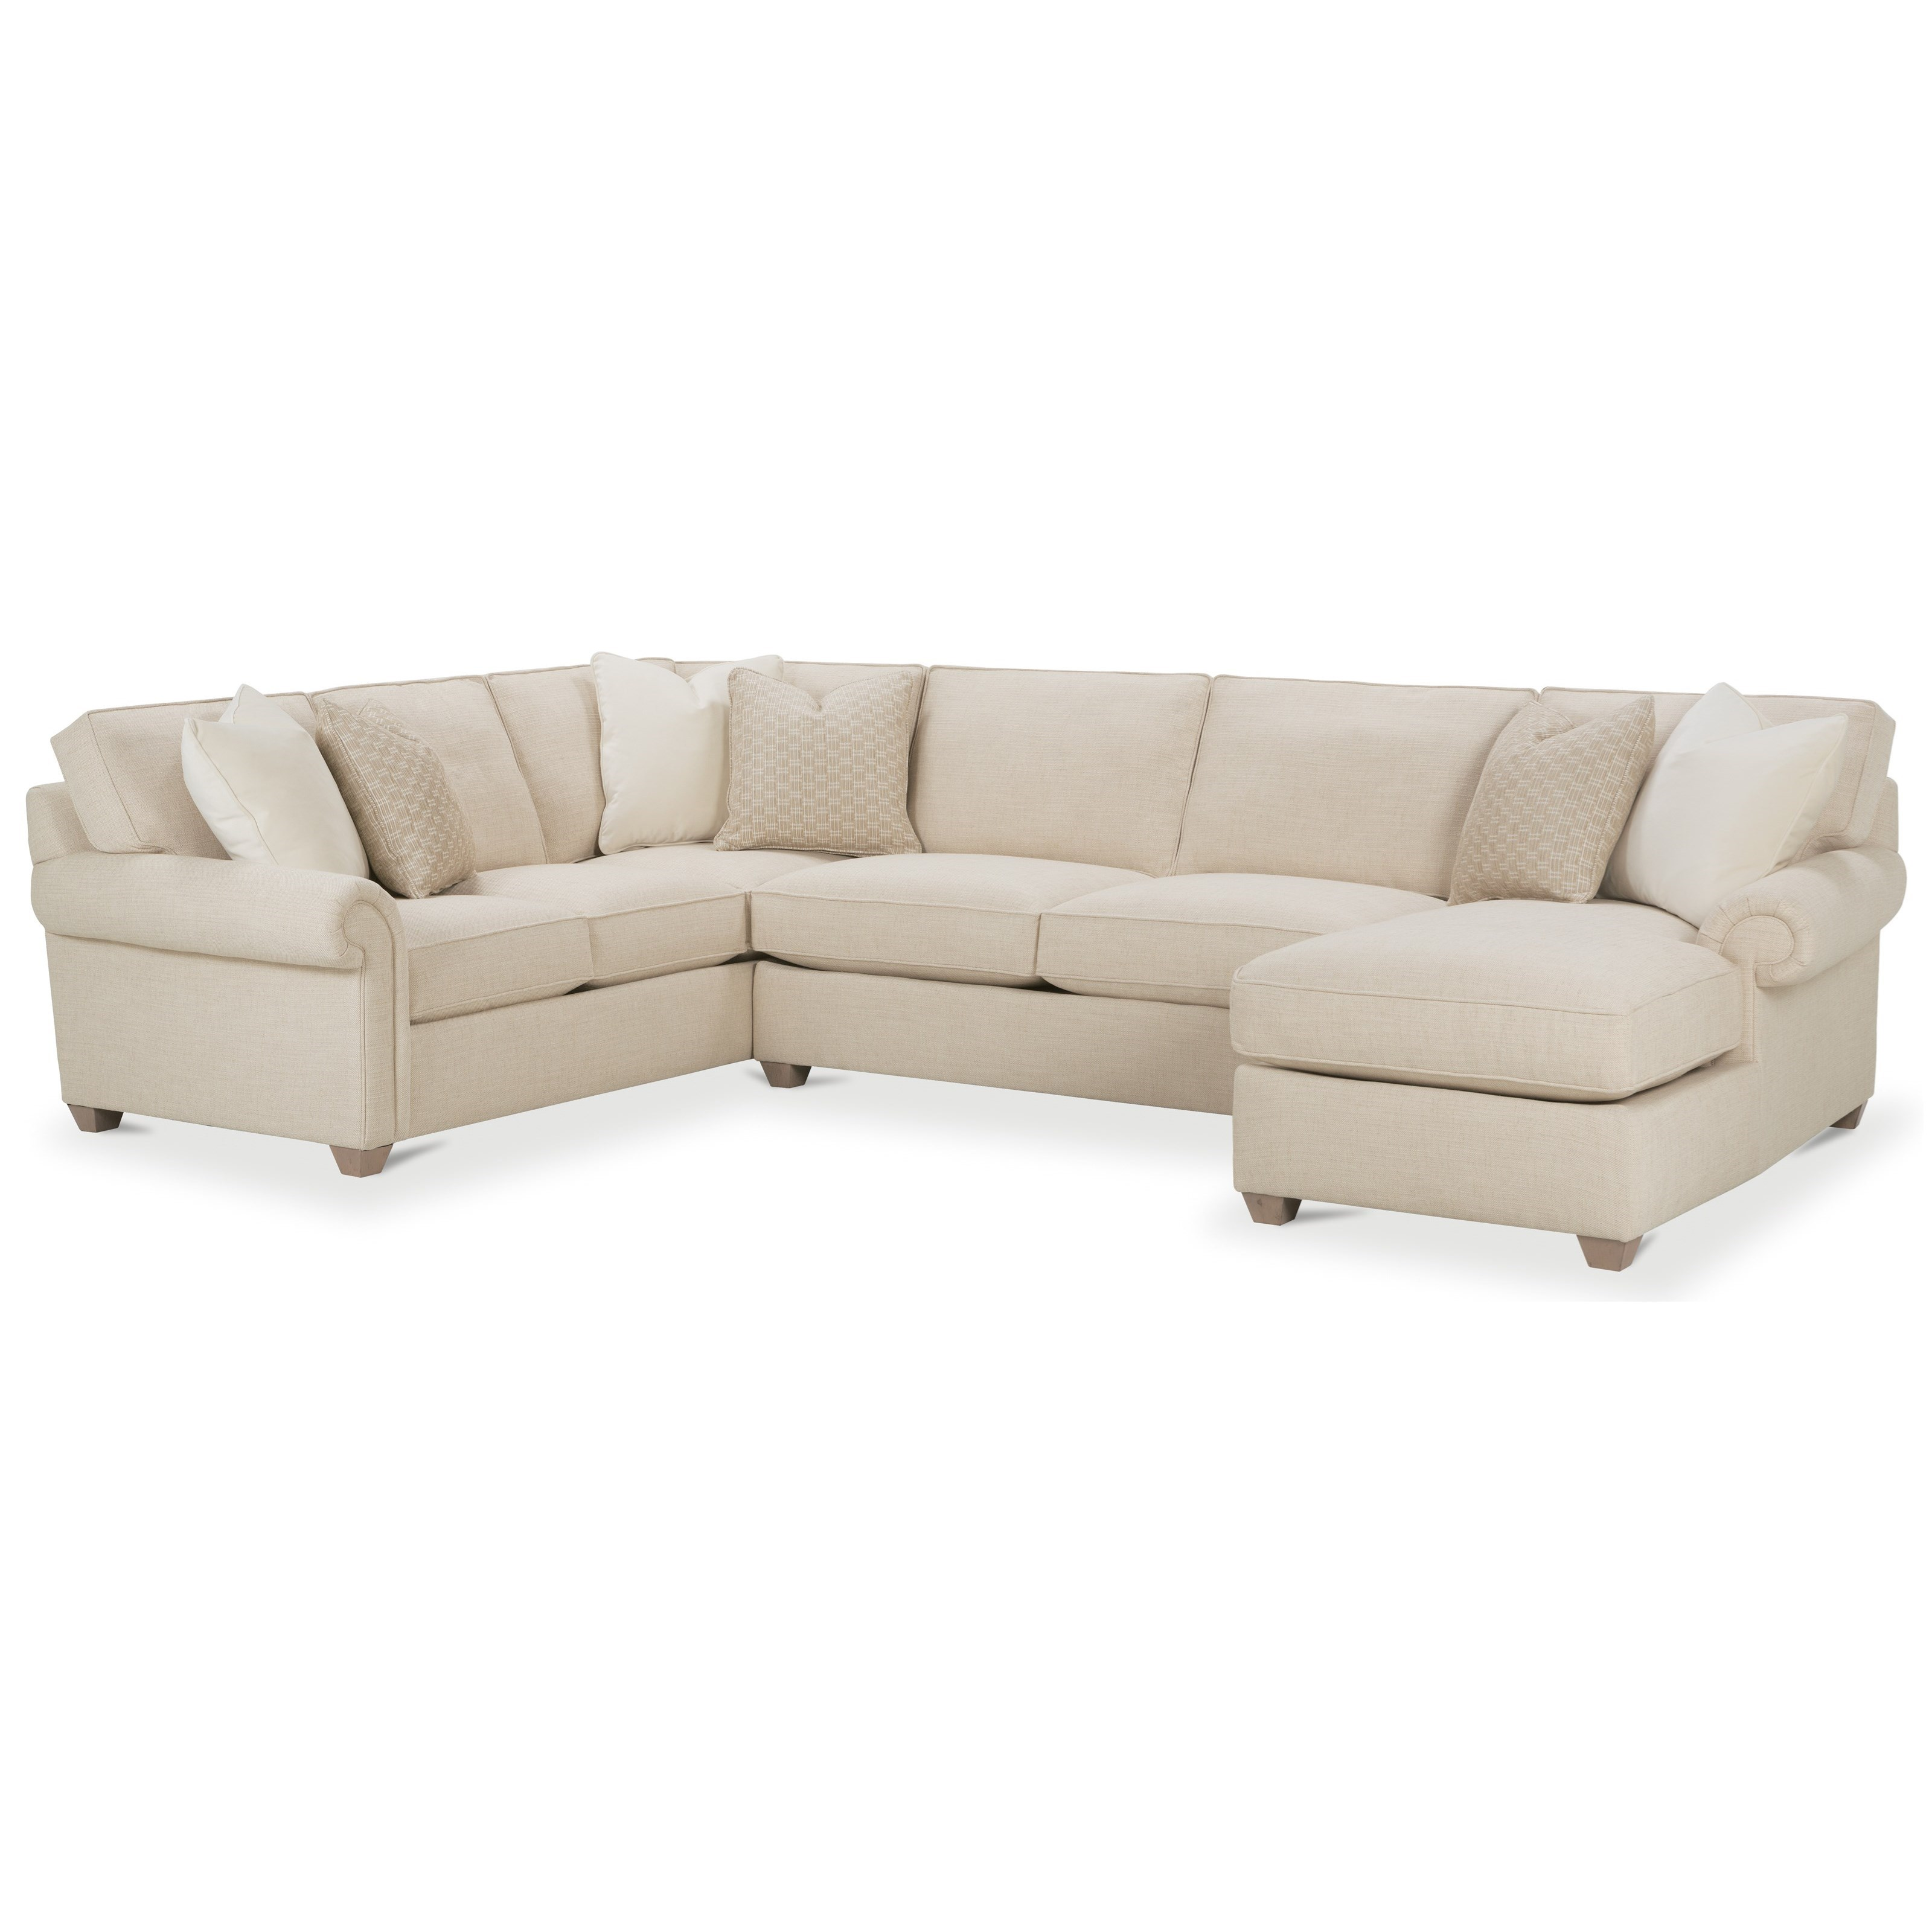 Rowe morgan traditional three piece sectional sofa with for Traditional sectional